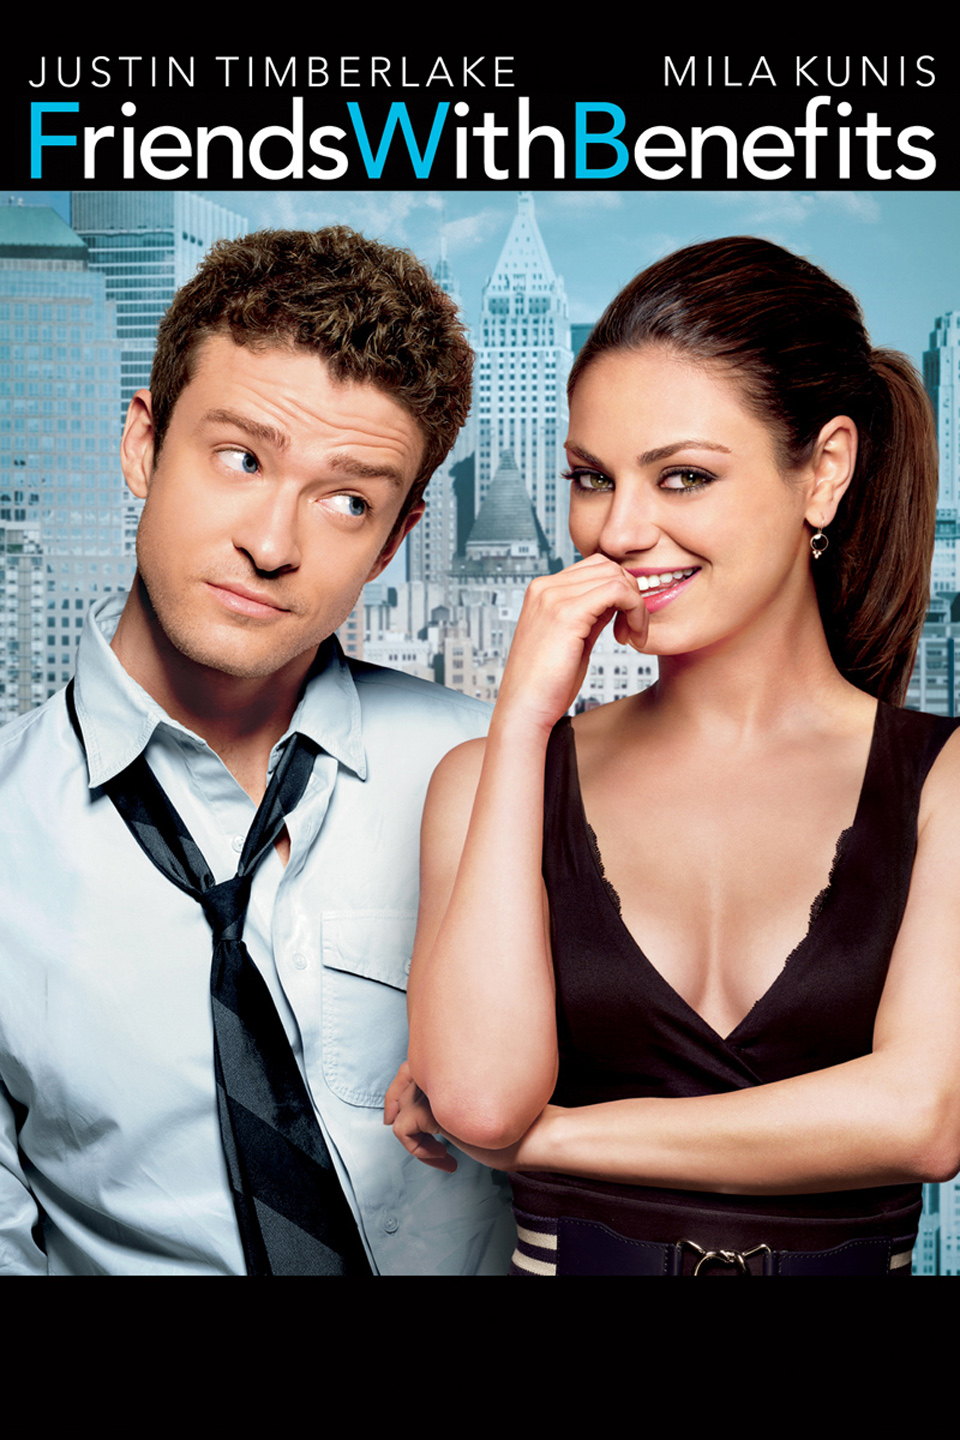 Friends With Benefits (2011)[1080p][Hindi Audio Only][DZRG] – 3.73 GB